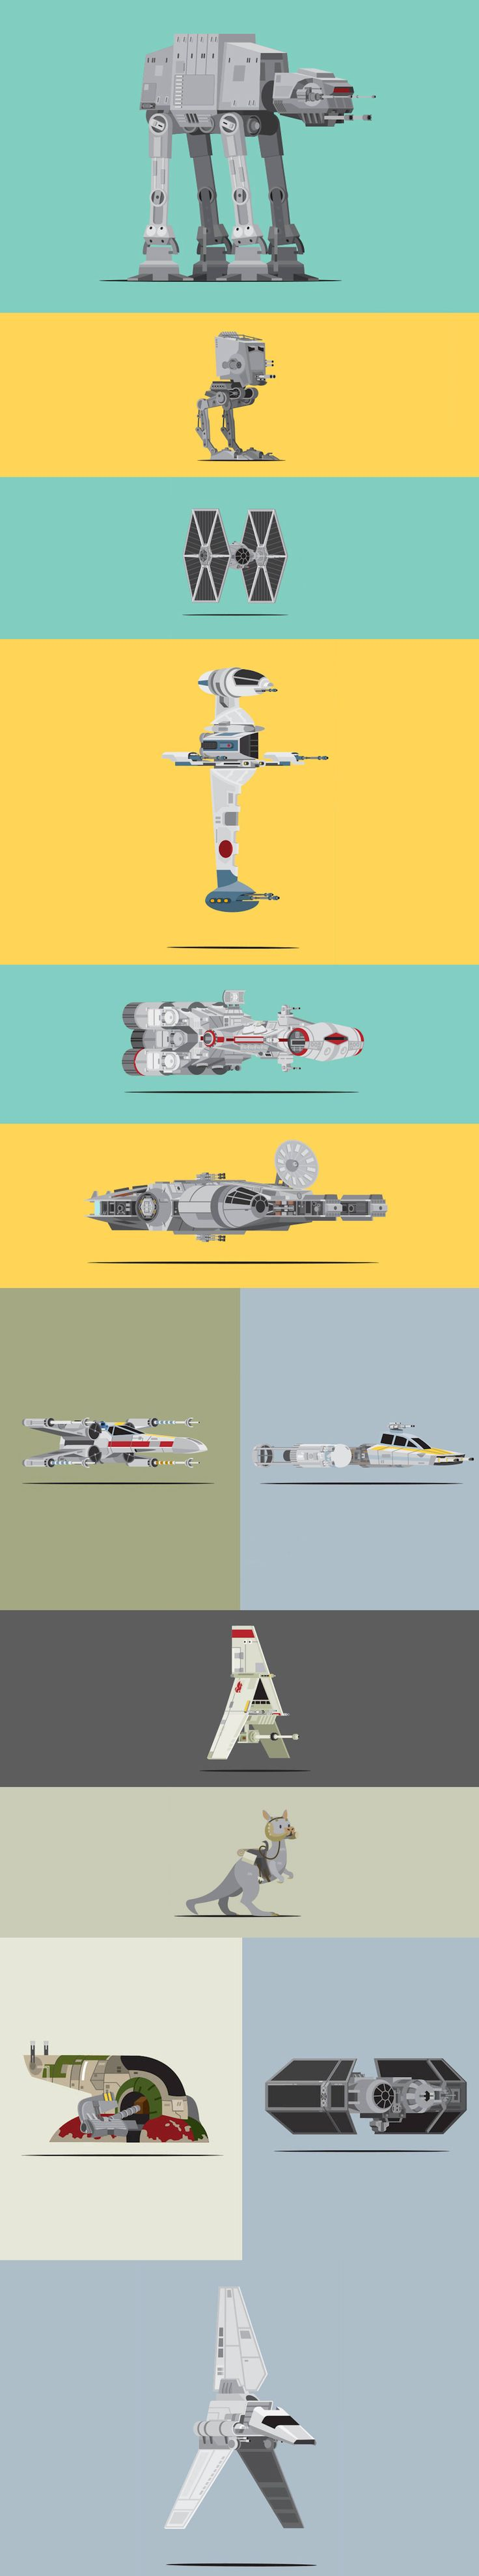 Scott Park Star Wars vehicle illustrations